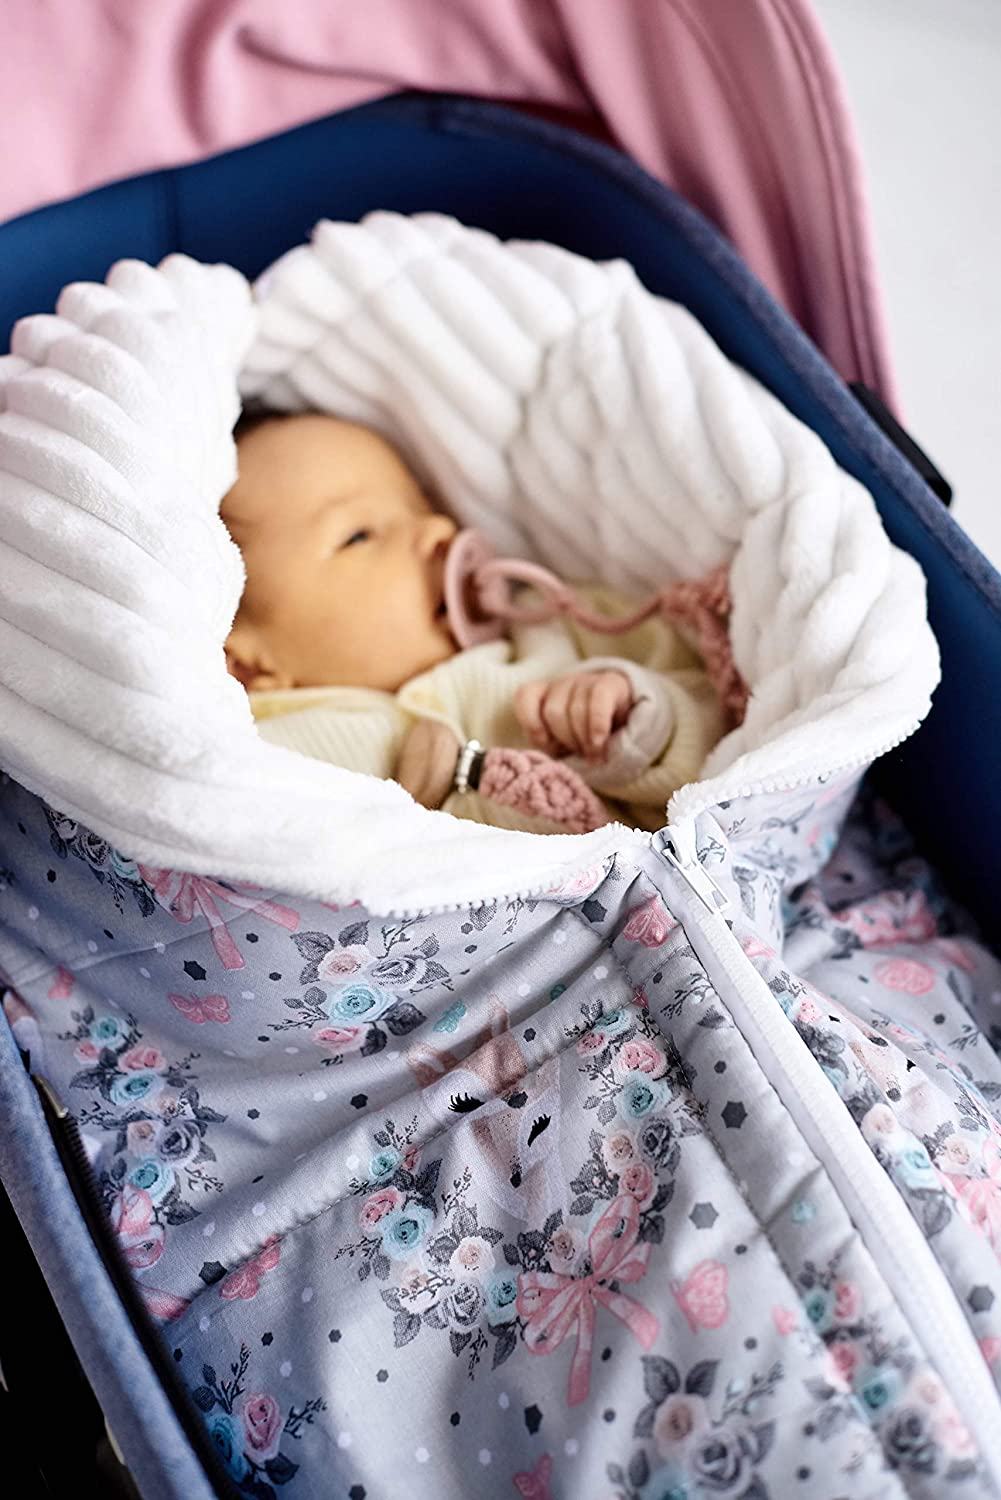 Max 90% OFF Newborn Sleeping Bag with Flowers Pink Roses Blanket Store babies for